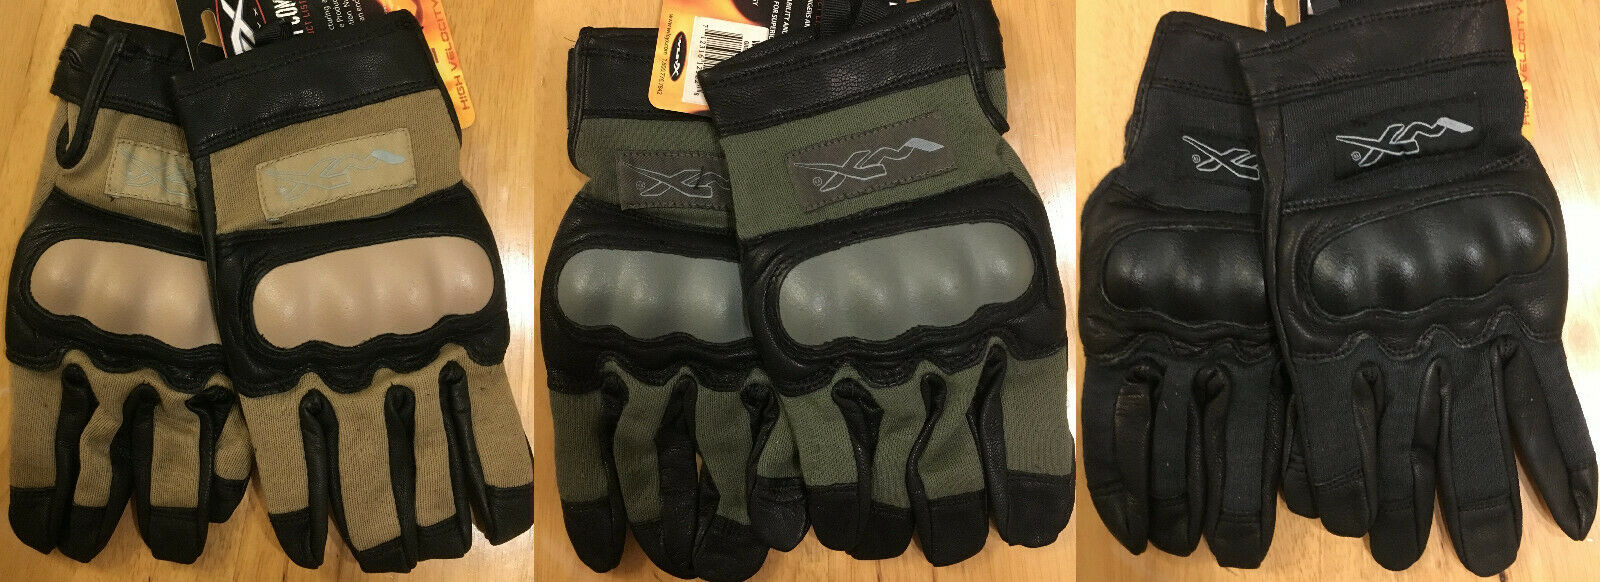 NEW Wiley  X - Cag-1 Combat Tactical Assault G s  the latest models